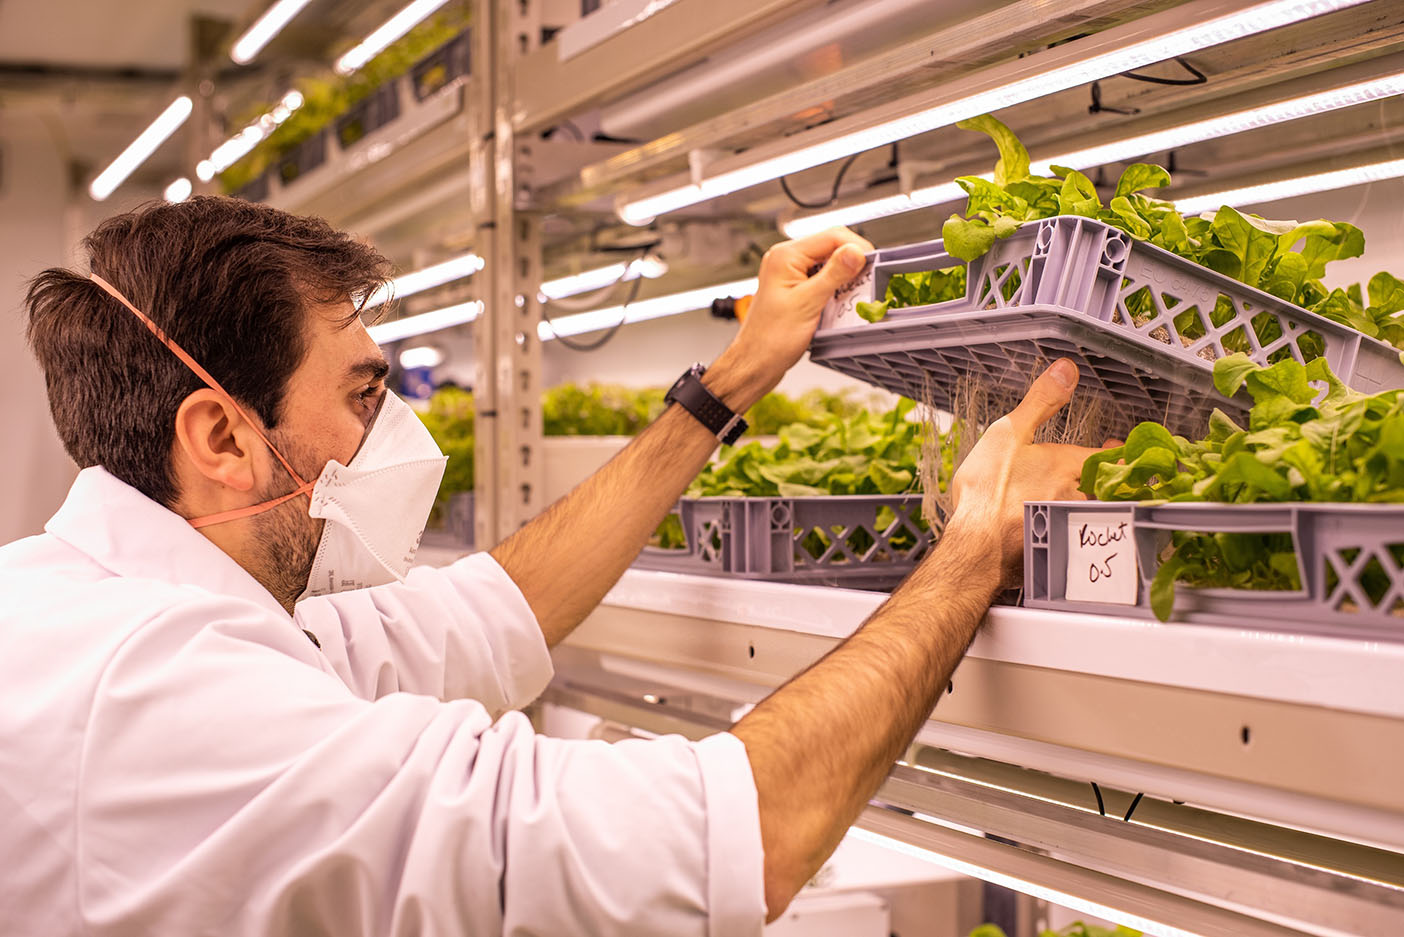 Ricardo Lopes, Research Scientist at LettUs Grow and research lead on the project, checking on plants in the aeroponic vertical farm